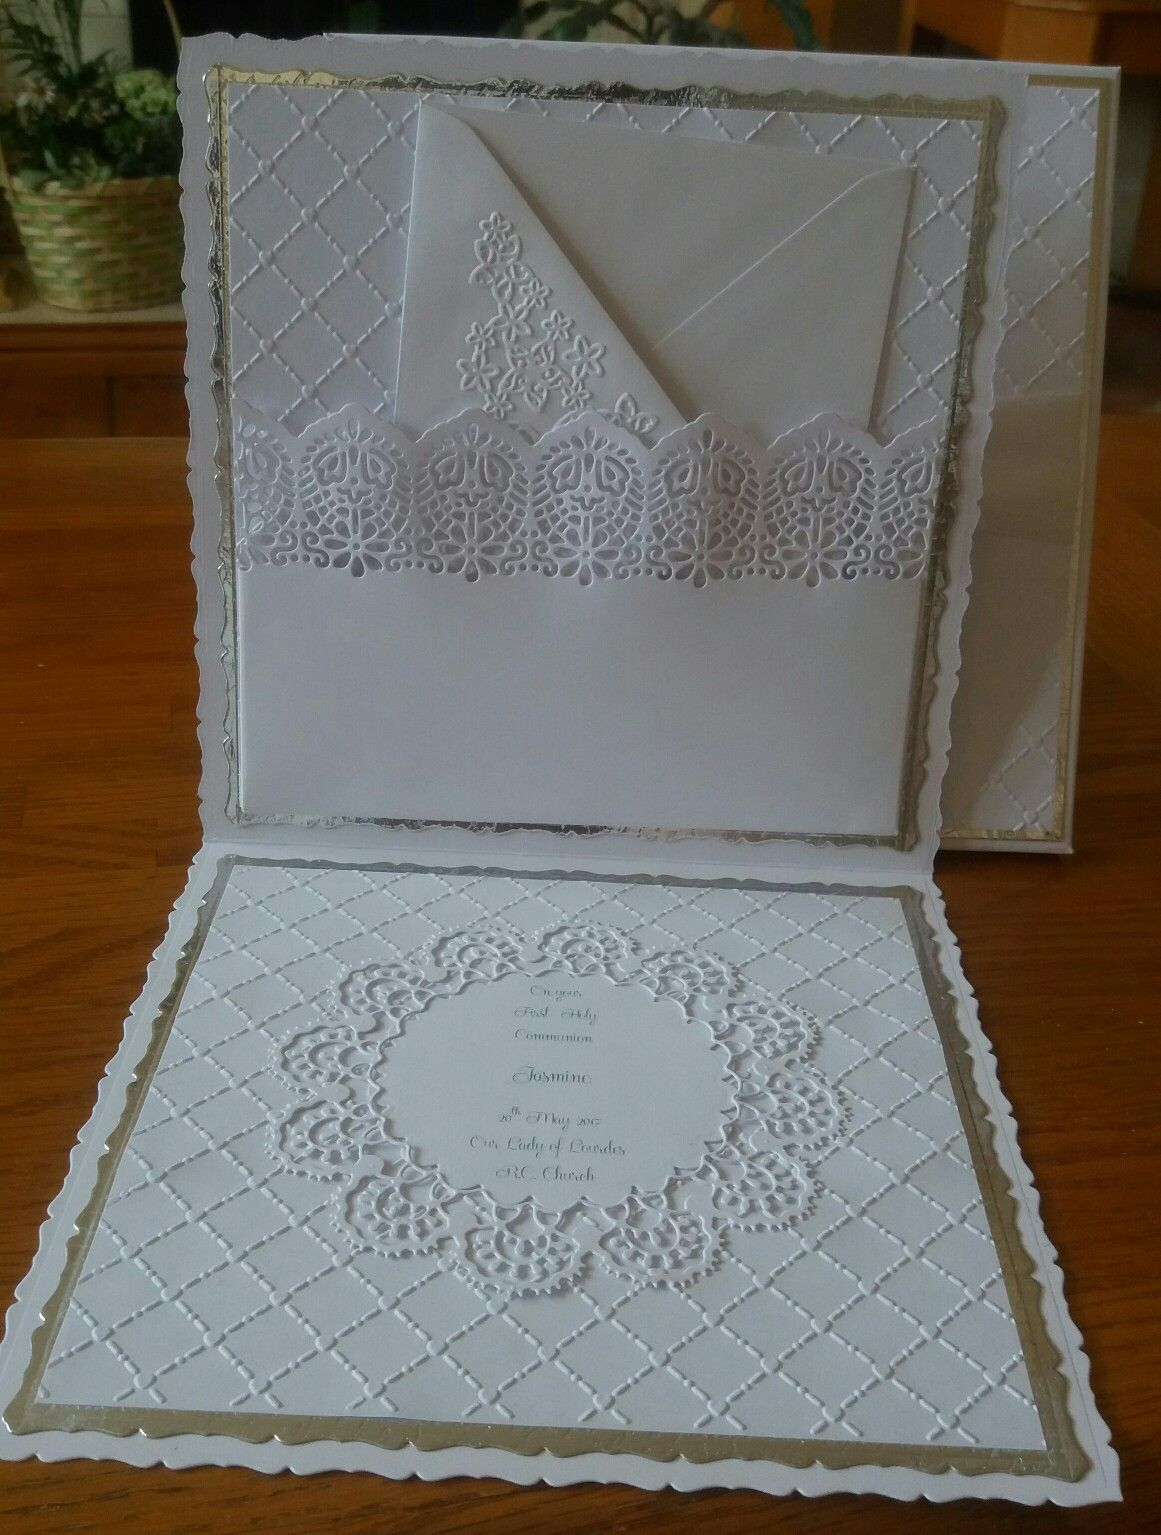 Inside of first Communion card. I made a pocket to hold a gift envelope.